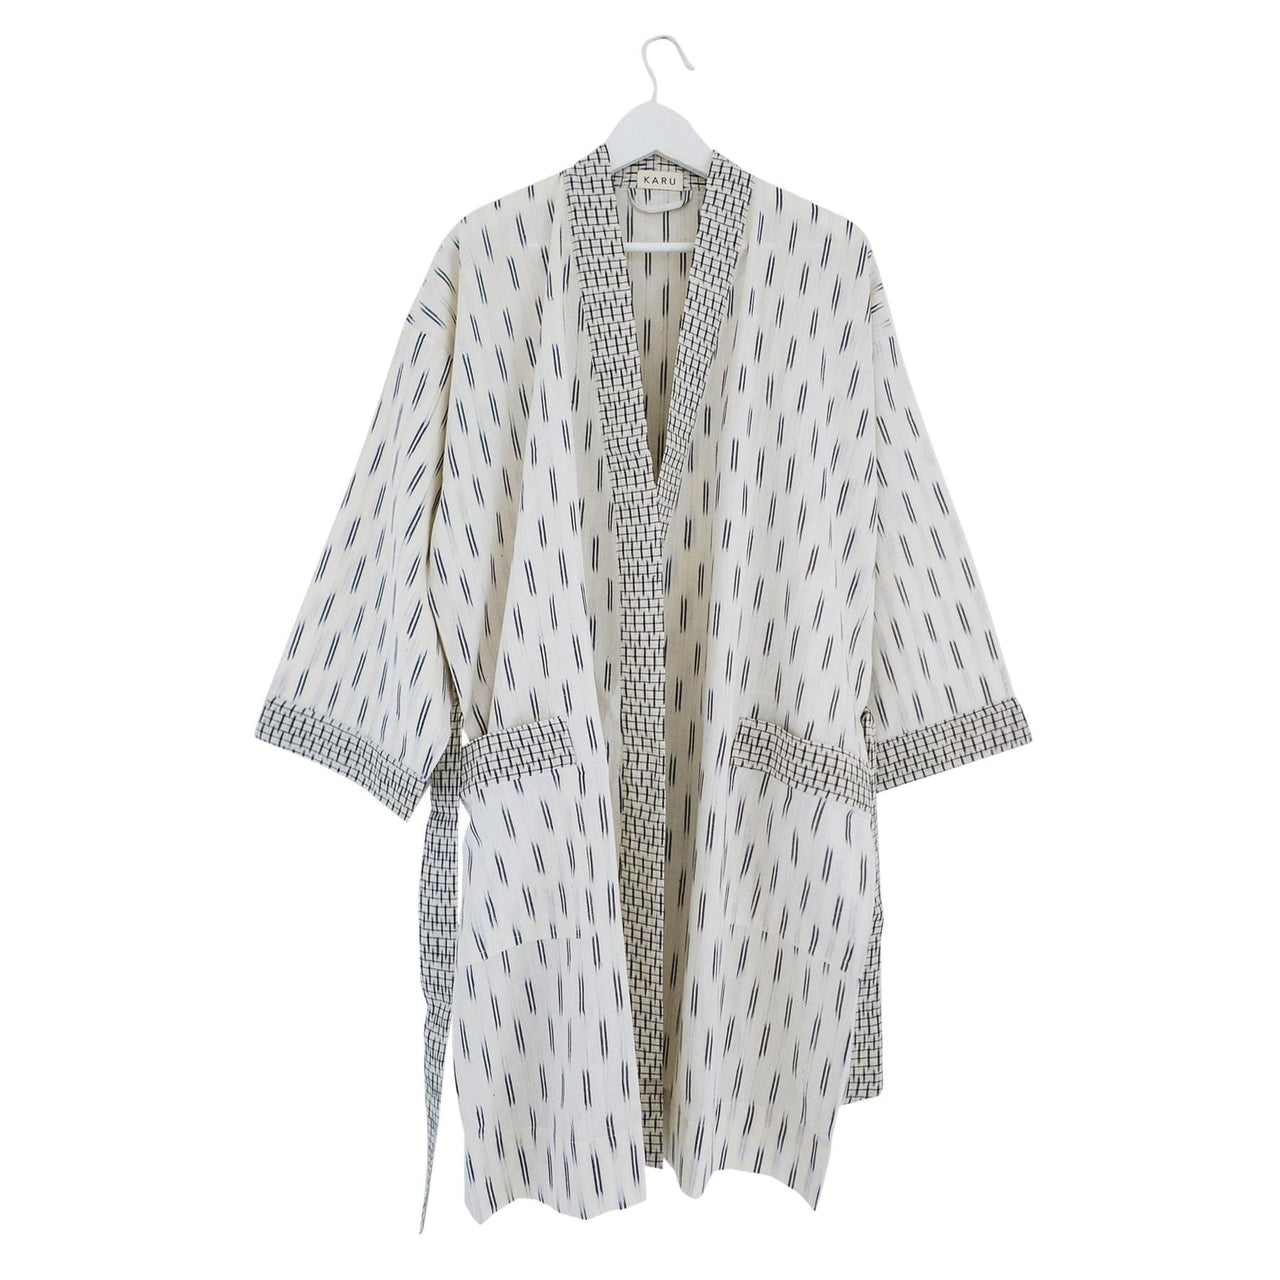 KARU Sleepwear Ikat Robe in Ivory